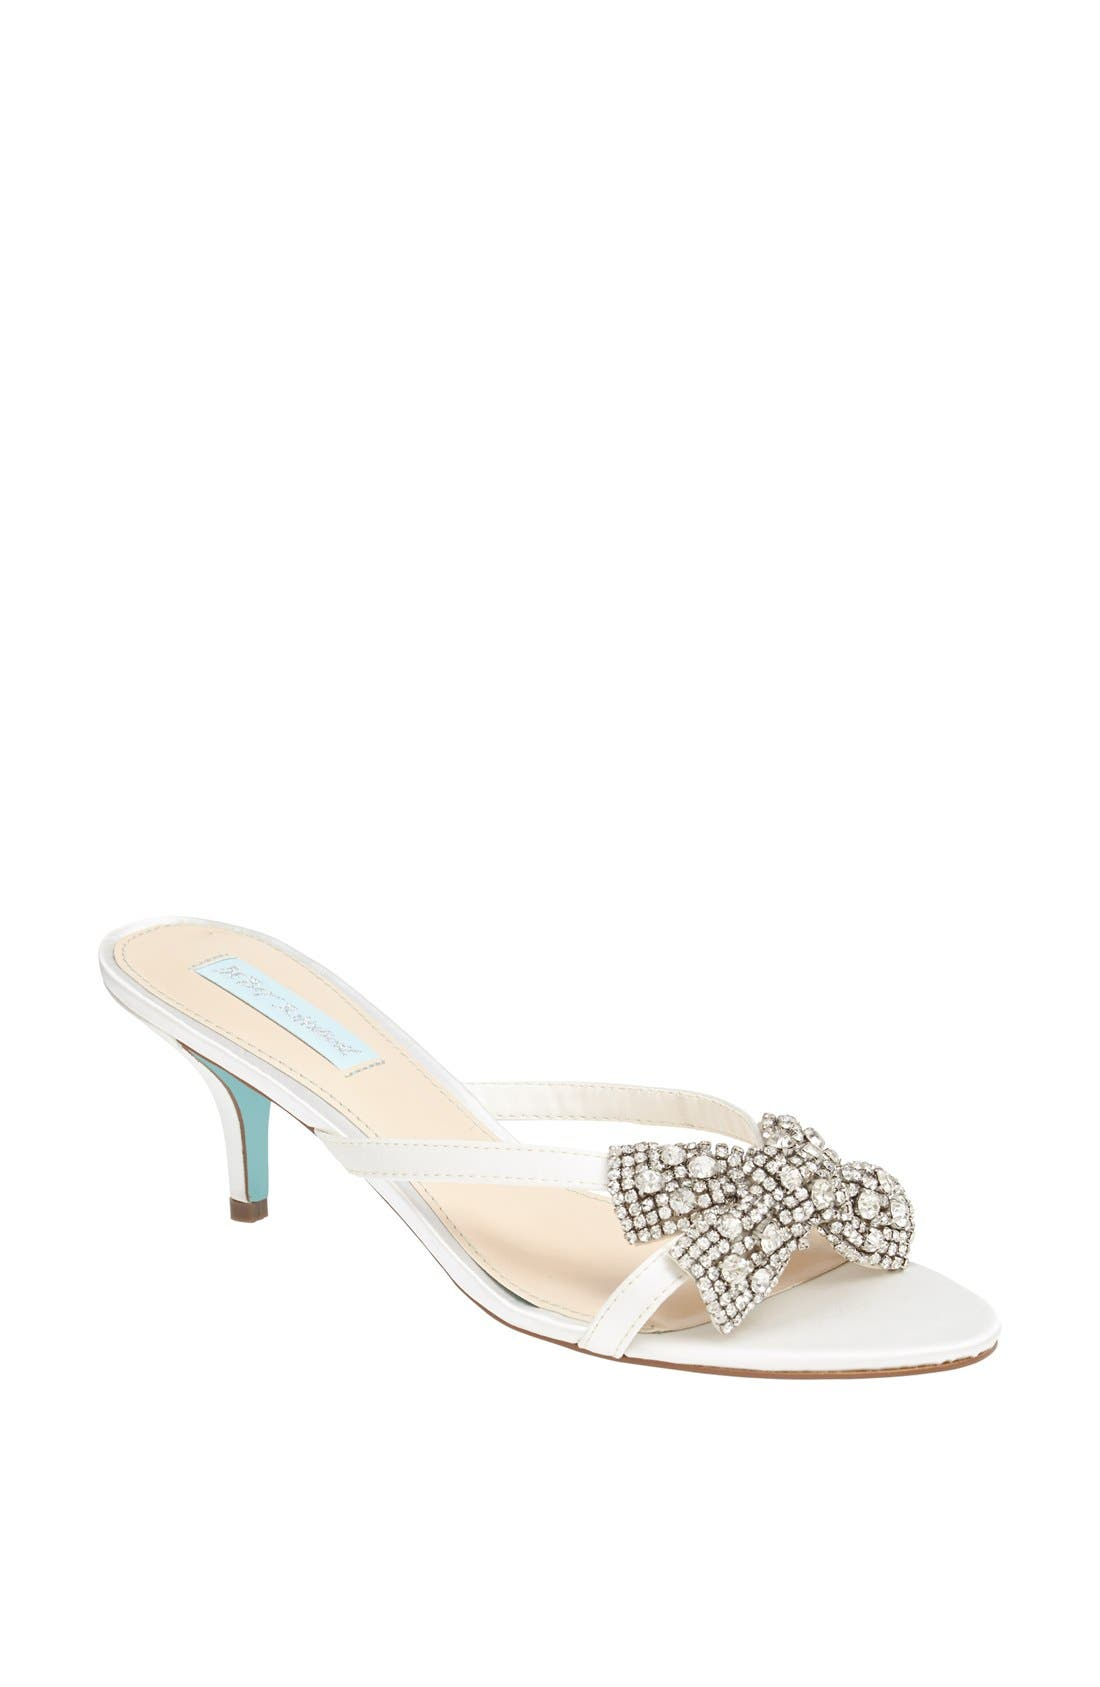 Alternate Image 1 Selected - Betsey Johnson 'Blush' Sandal